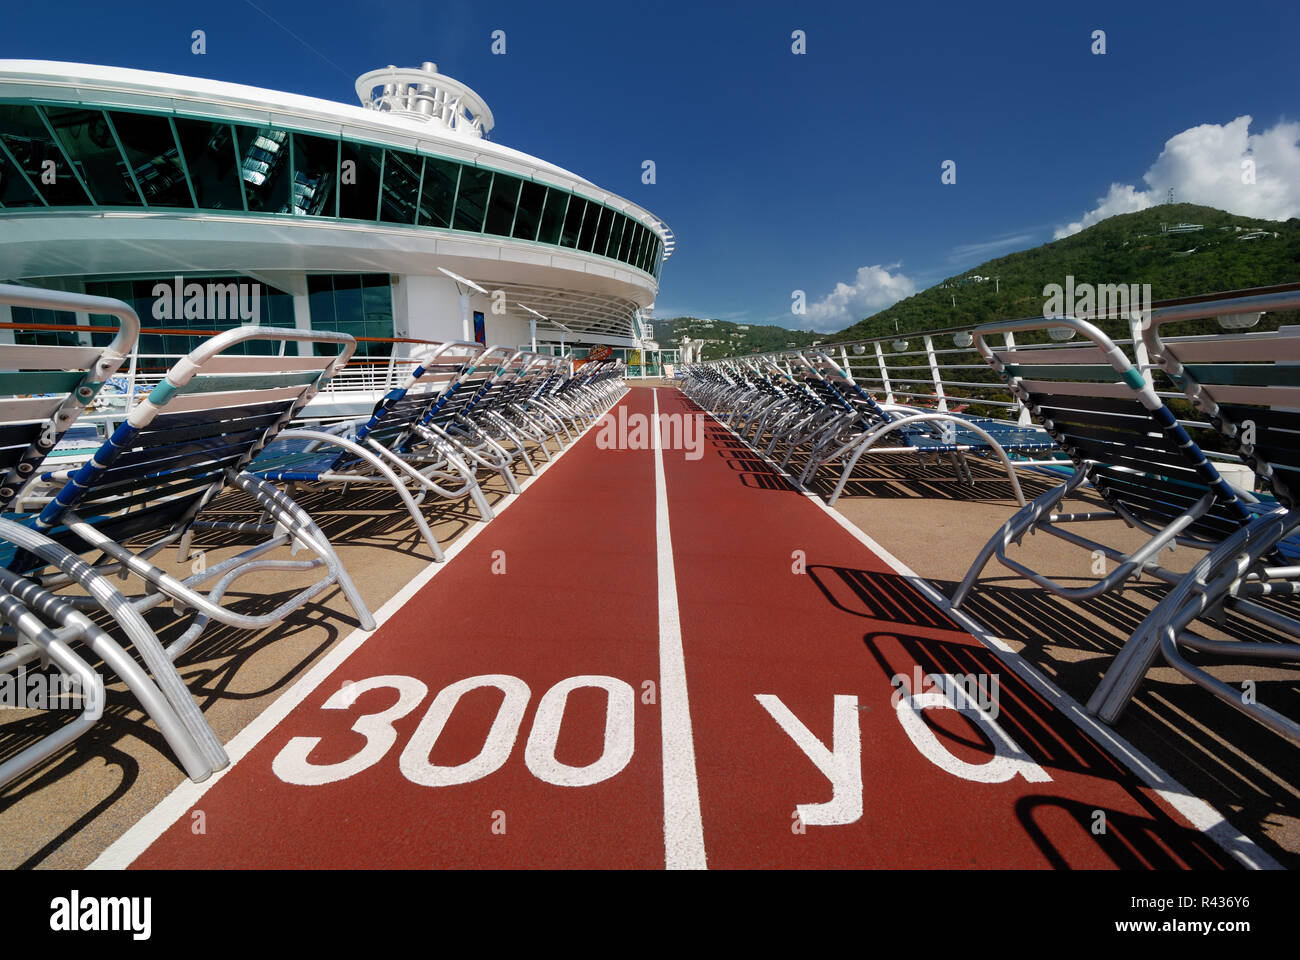 The jogging track on deck twelve of Royal Caribbean's Adventure of the Seas. - Stock Image